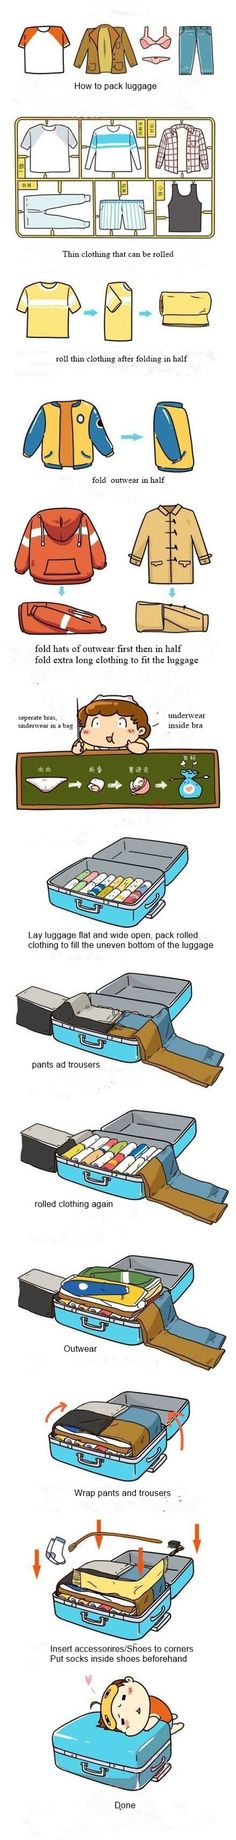 How to Pack Luggages More Efficiently | www.FabArtDIY.com LIKE Us on Facebook ==> https://www.facebook.com/FabArtDIY